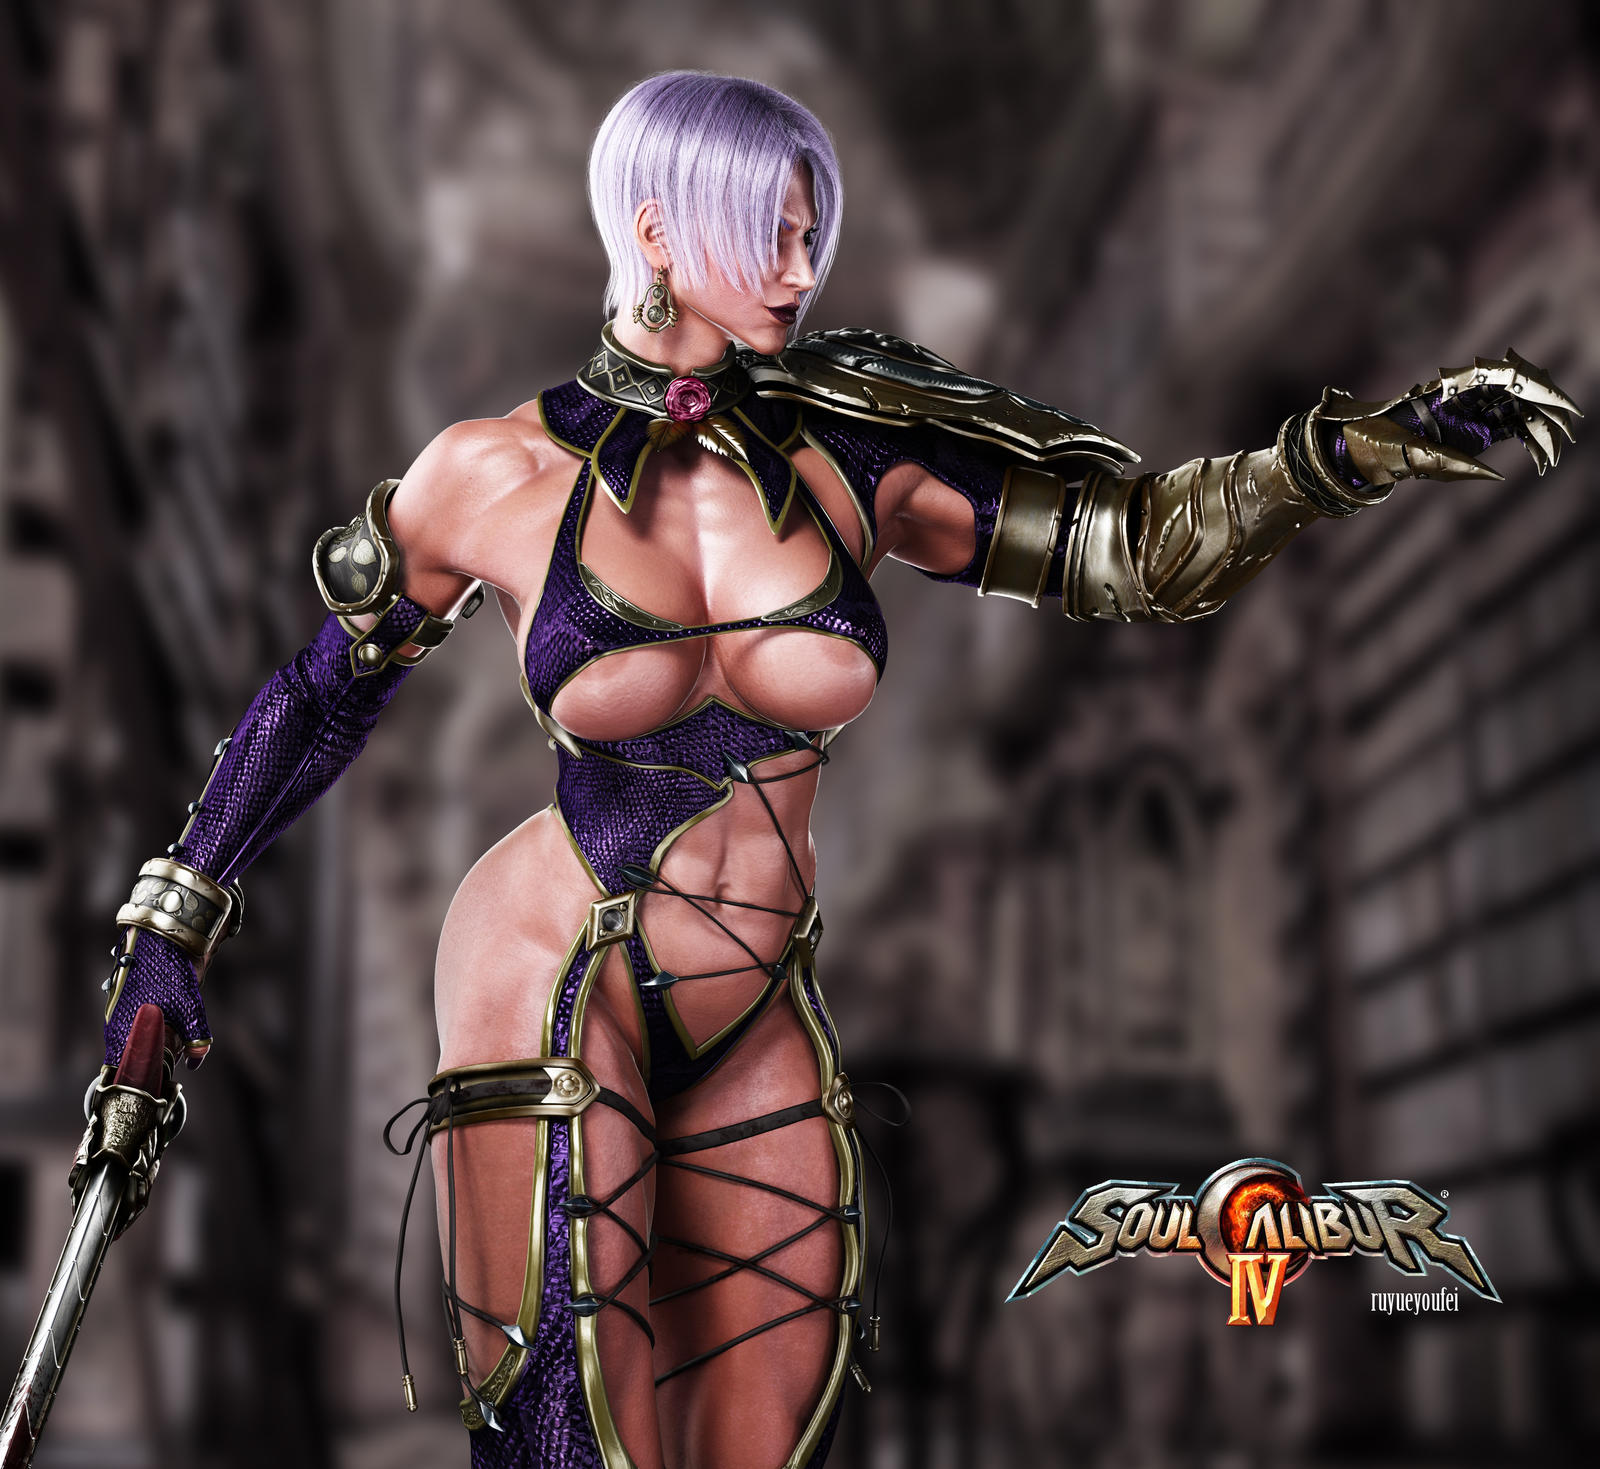 Soulcalibur naked pictures sex clip